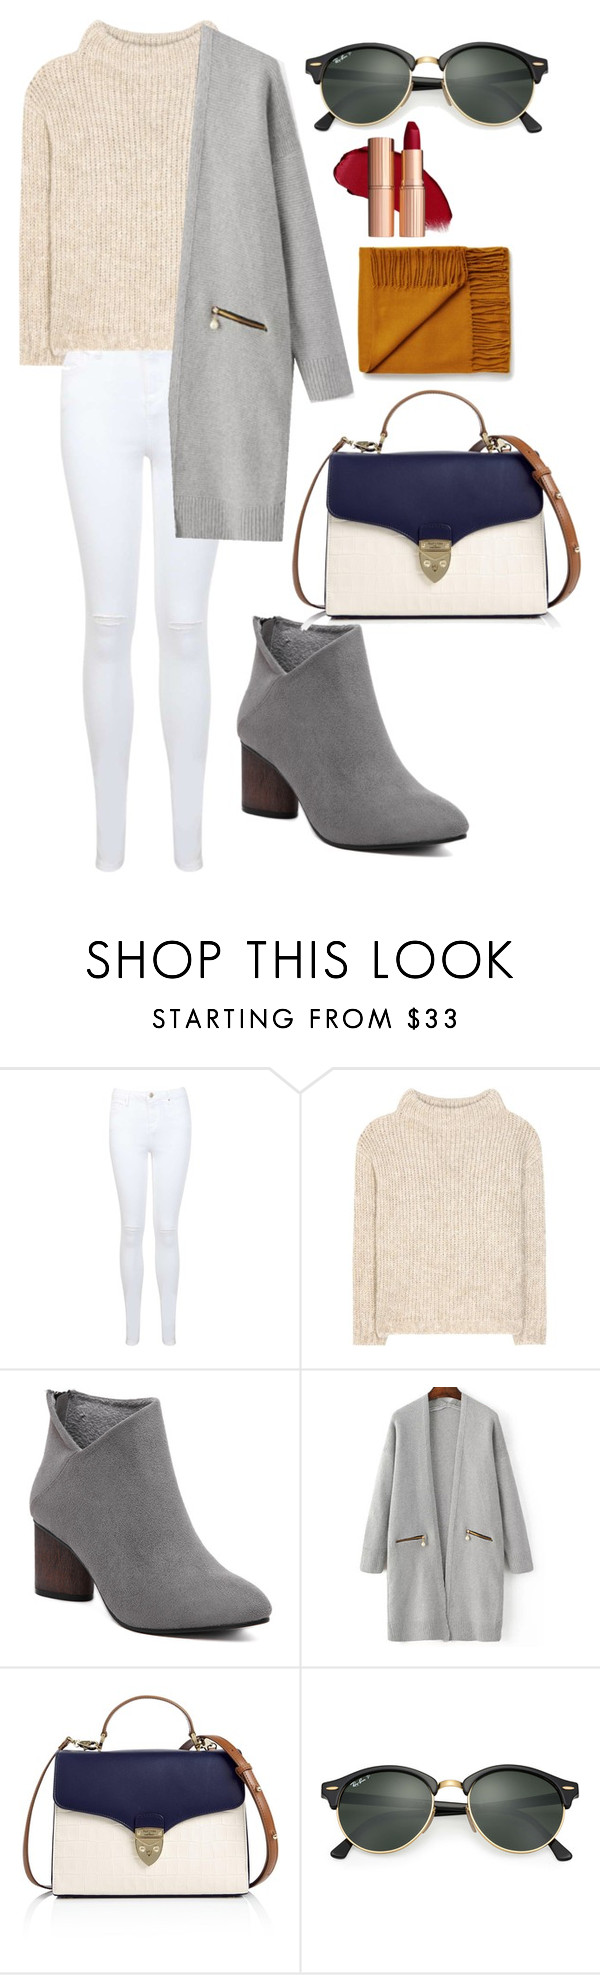 """winter"" by annisarestanti ❤ liked on Polyvore featuring Miss Selfridge, Tom Ford, Aspinal of London and Ray-Ban"